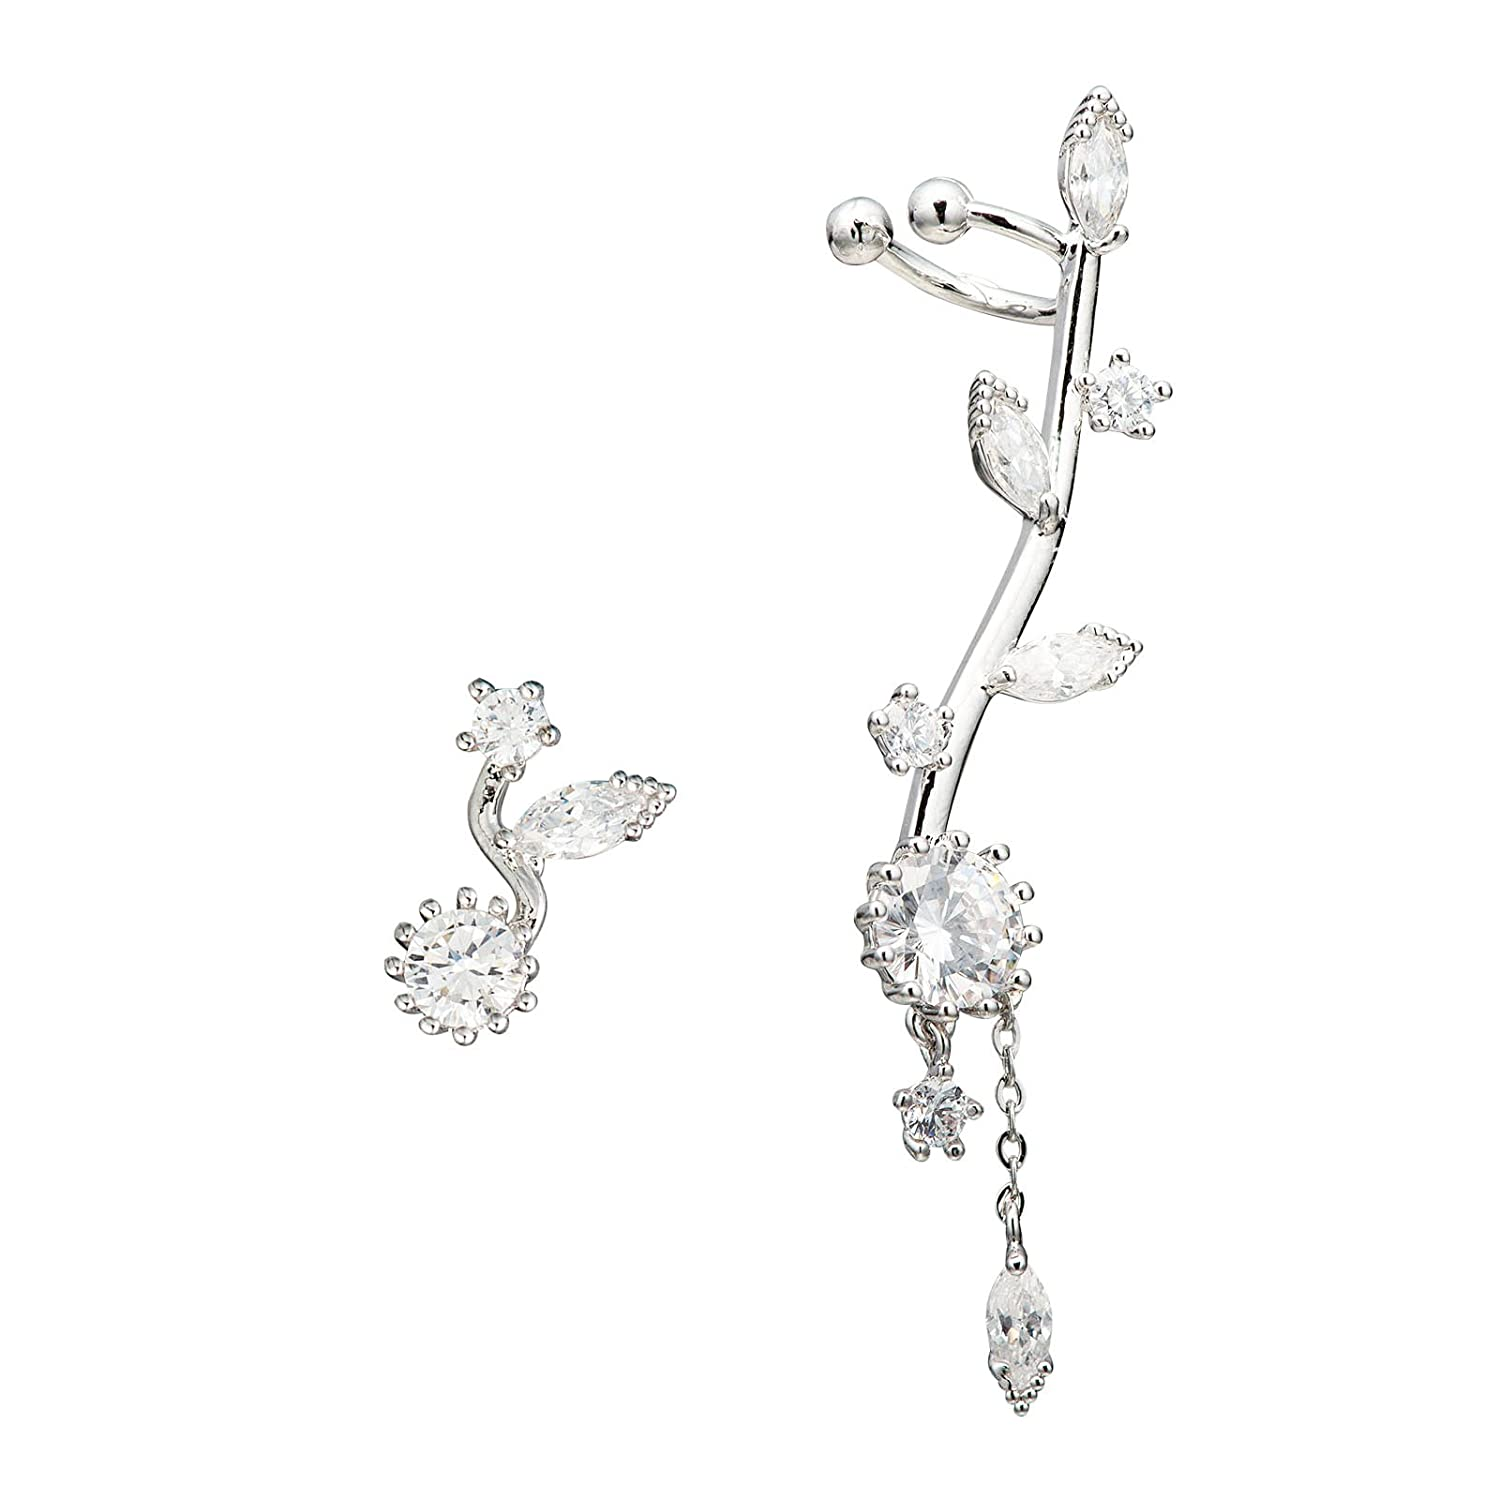 CZ Crystal Sun Flower Left Ear Cuffs Earrings Stud Set Silver Tone Chicinside c0018